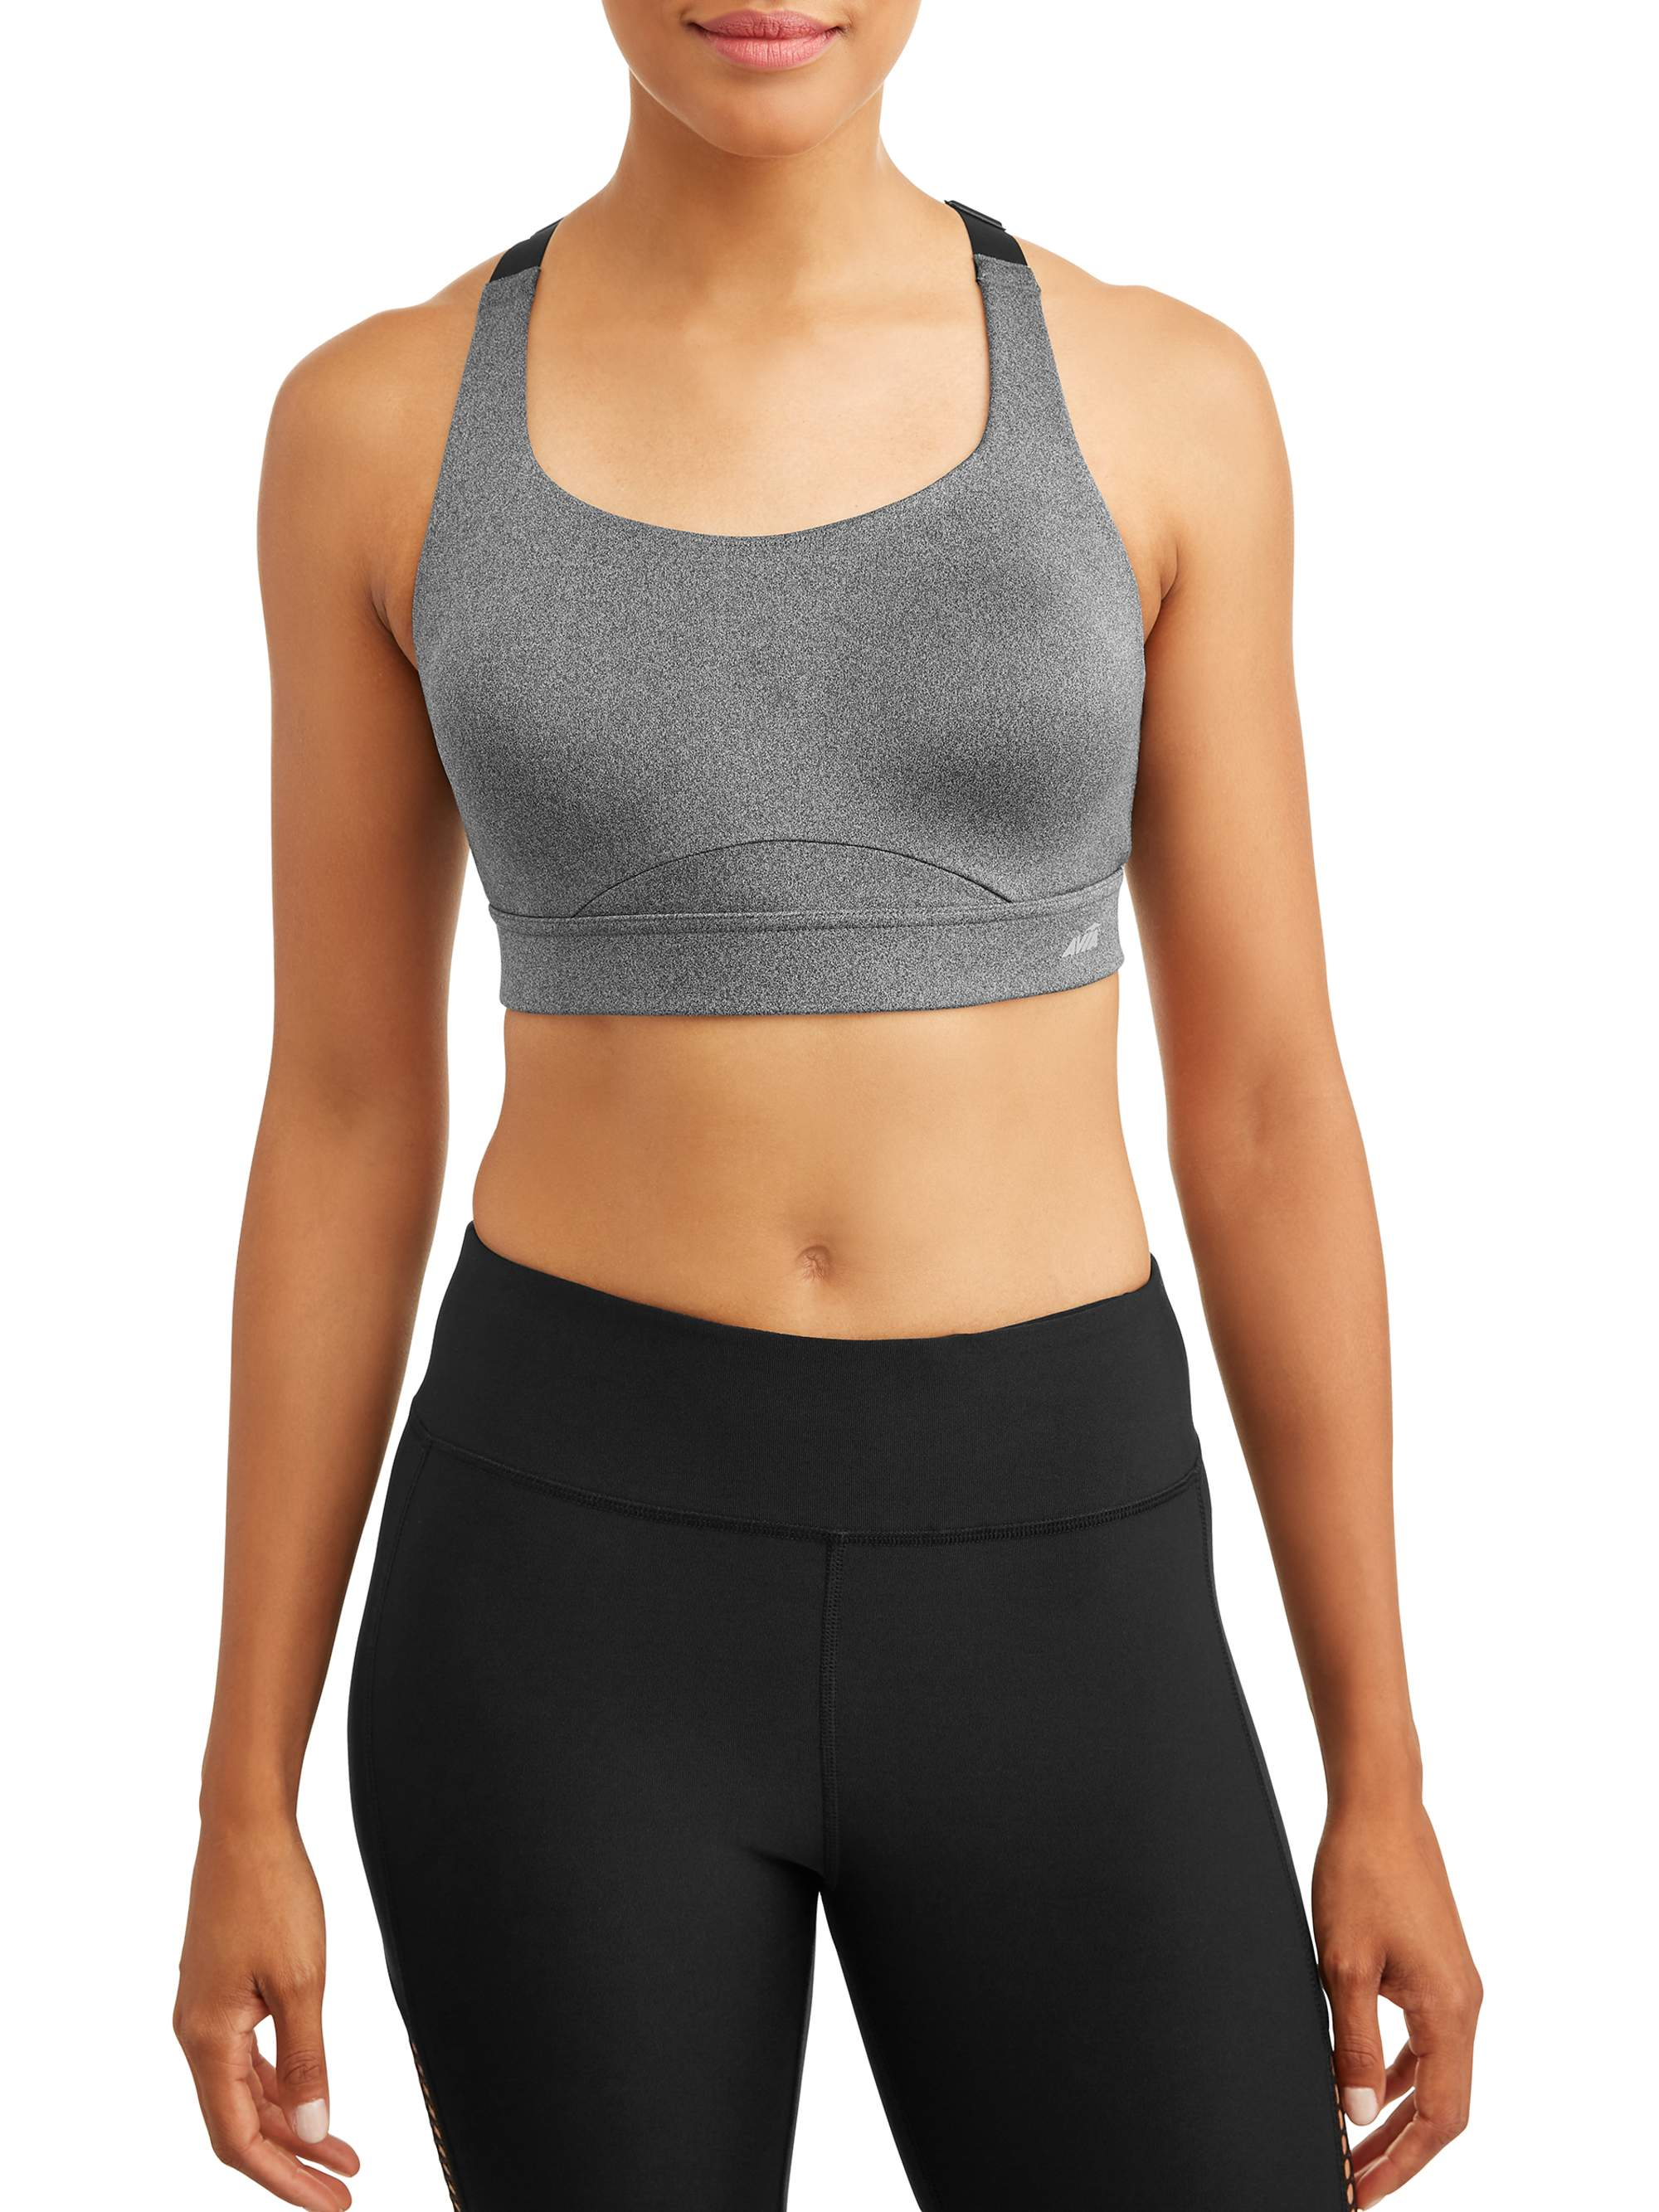 Women's Medium Support Wirefree Sports Bra, Style 76L624